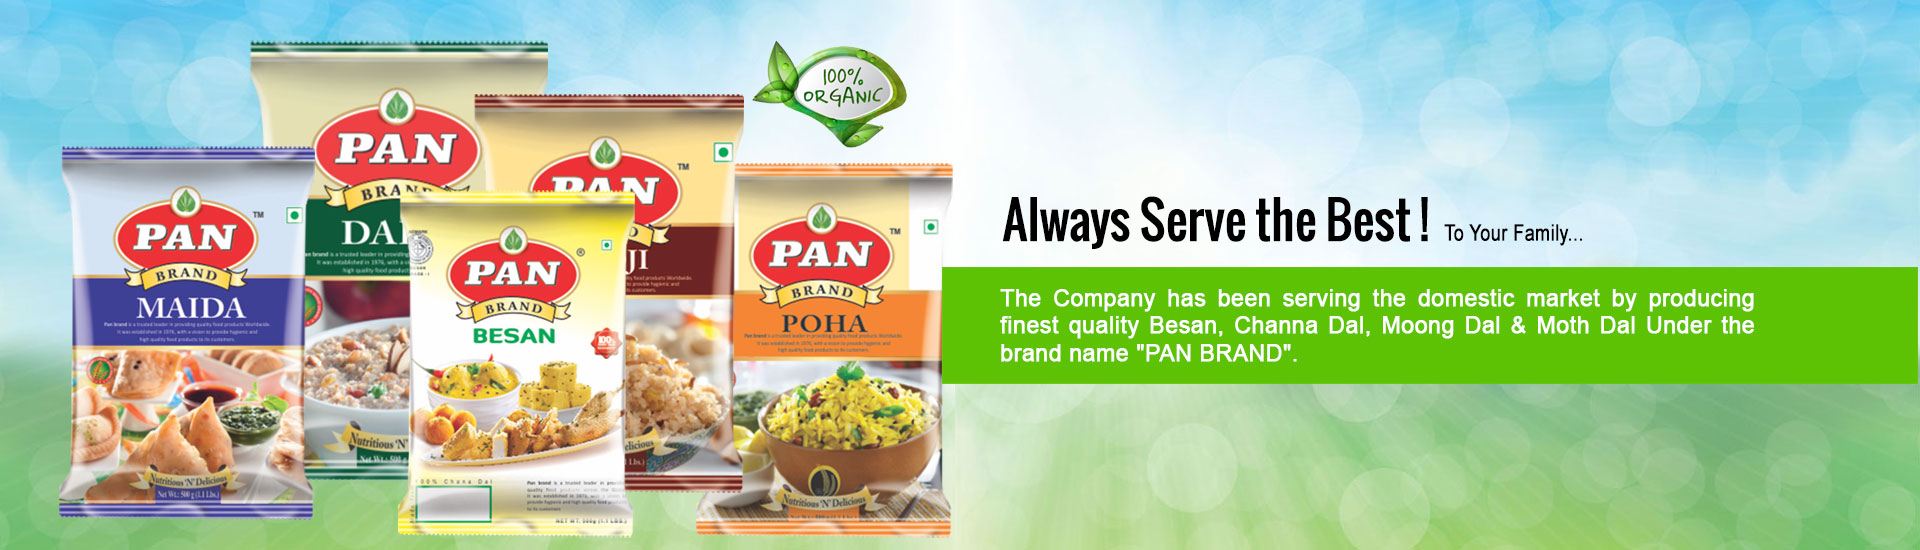 Pan Brand, Besan manufactures in India, Basmati Rice, Pulses, Sooji manufactures in India, Maida manufactures in India, Dalia manufactures in India, Poha Manufacturers in India